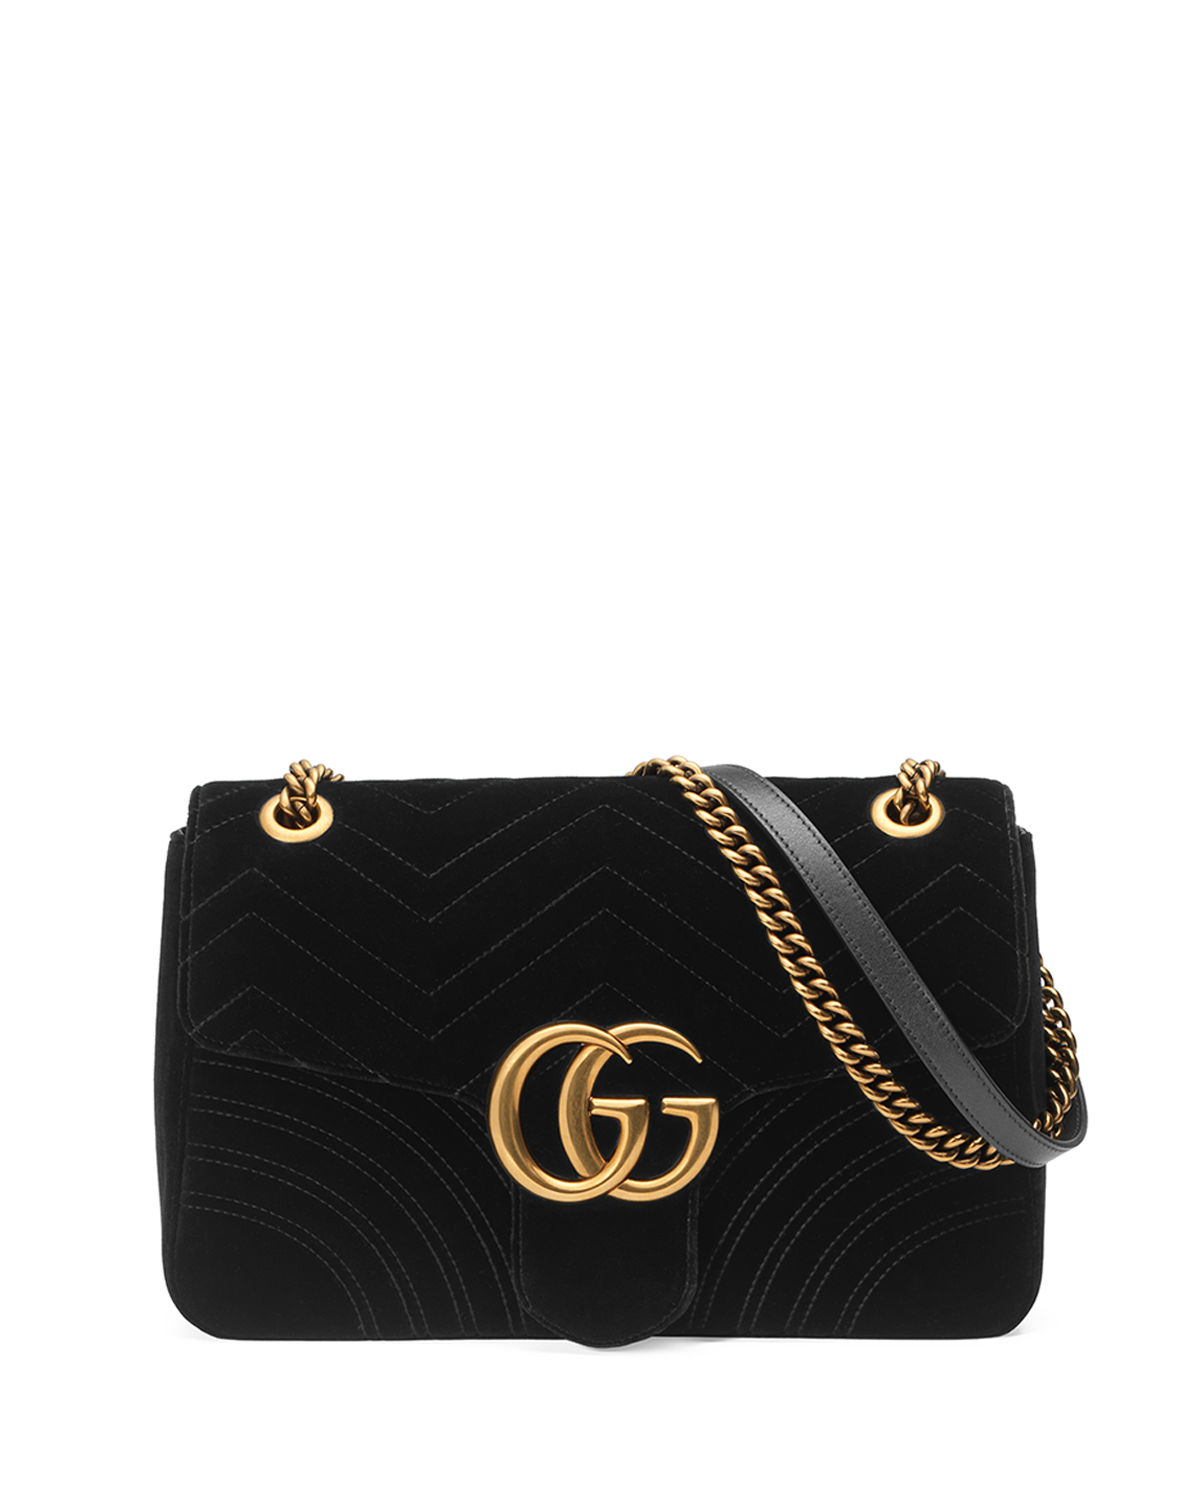 751486dd79f5d1 Gucci GG Marmont Medium Quilted Shoulder Bag | Neiman Marcus